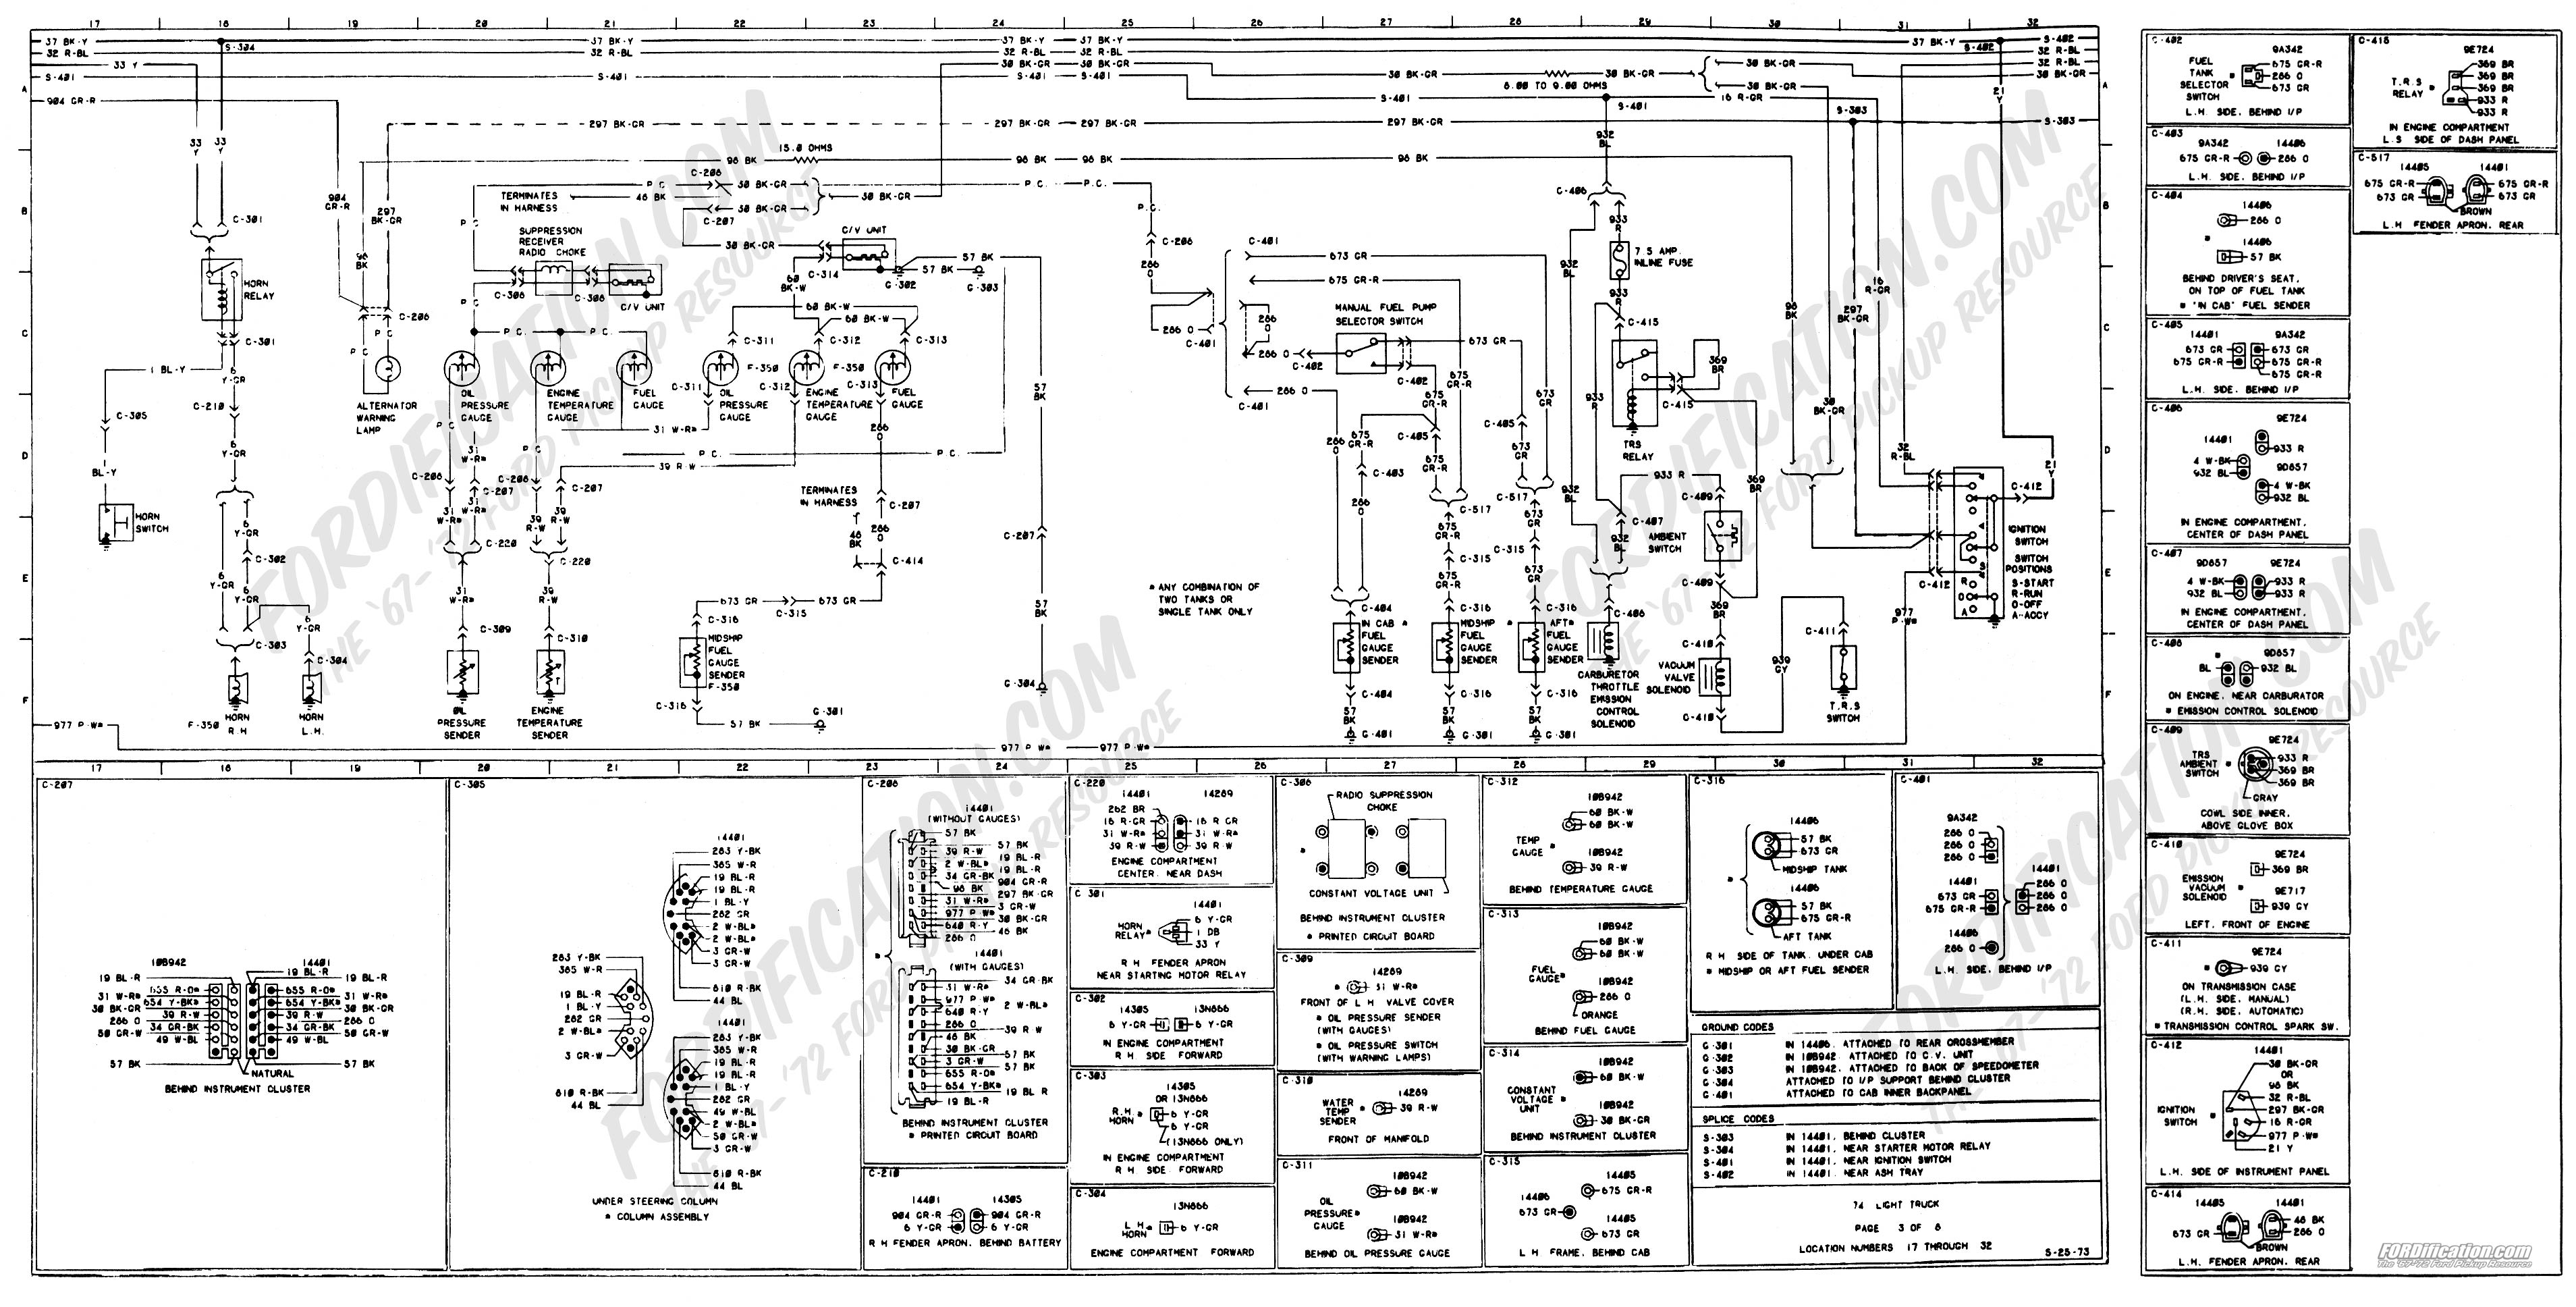 wiring_74master_3of8 1973 1979 ford truck wiring diagrams & schematics fordification net 1970 Ford F-250 Wiring Diagram at soozxer.org